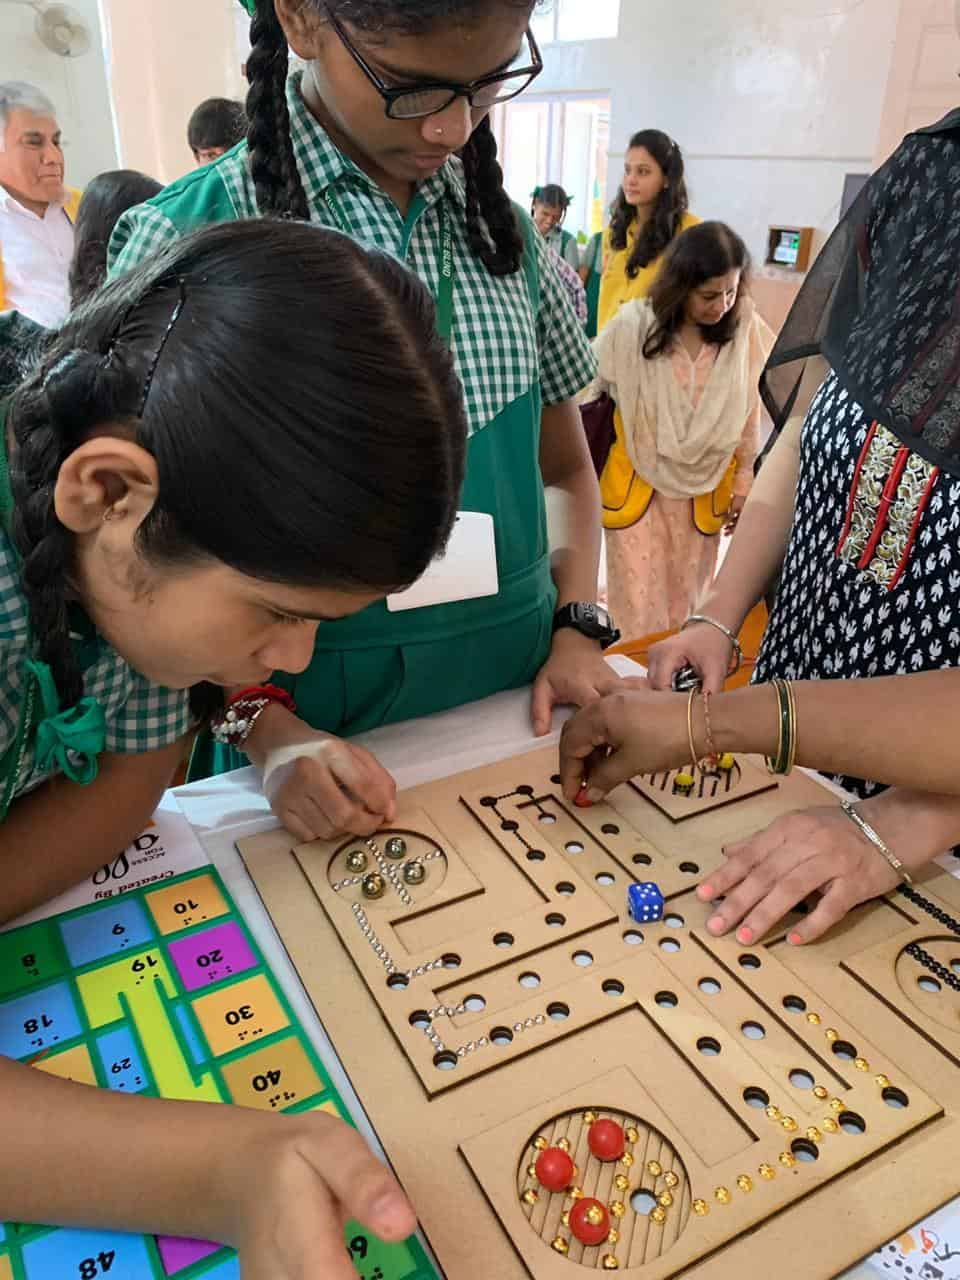 Ludo, Snakes & Ladders among popular board games made